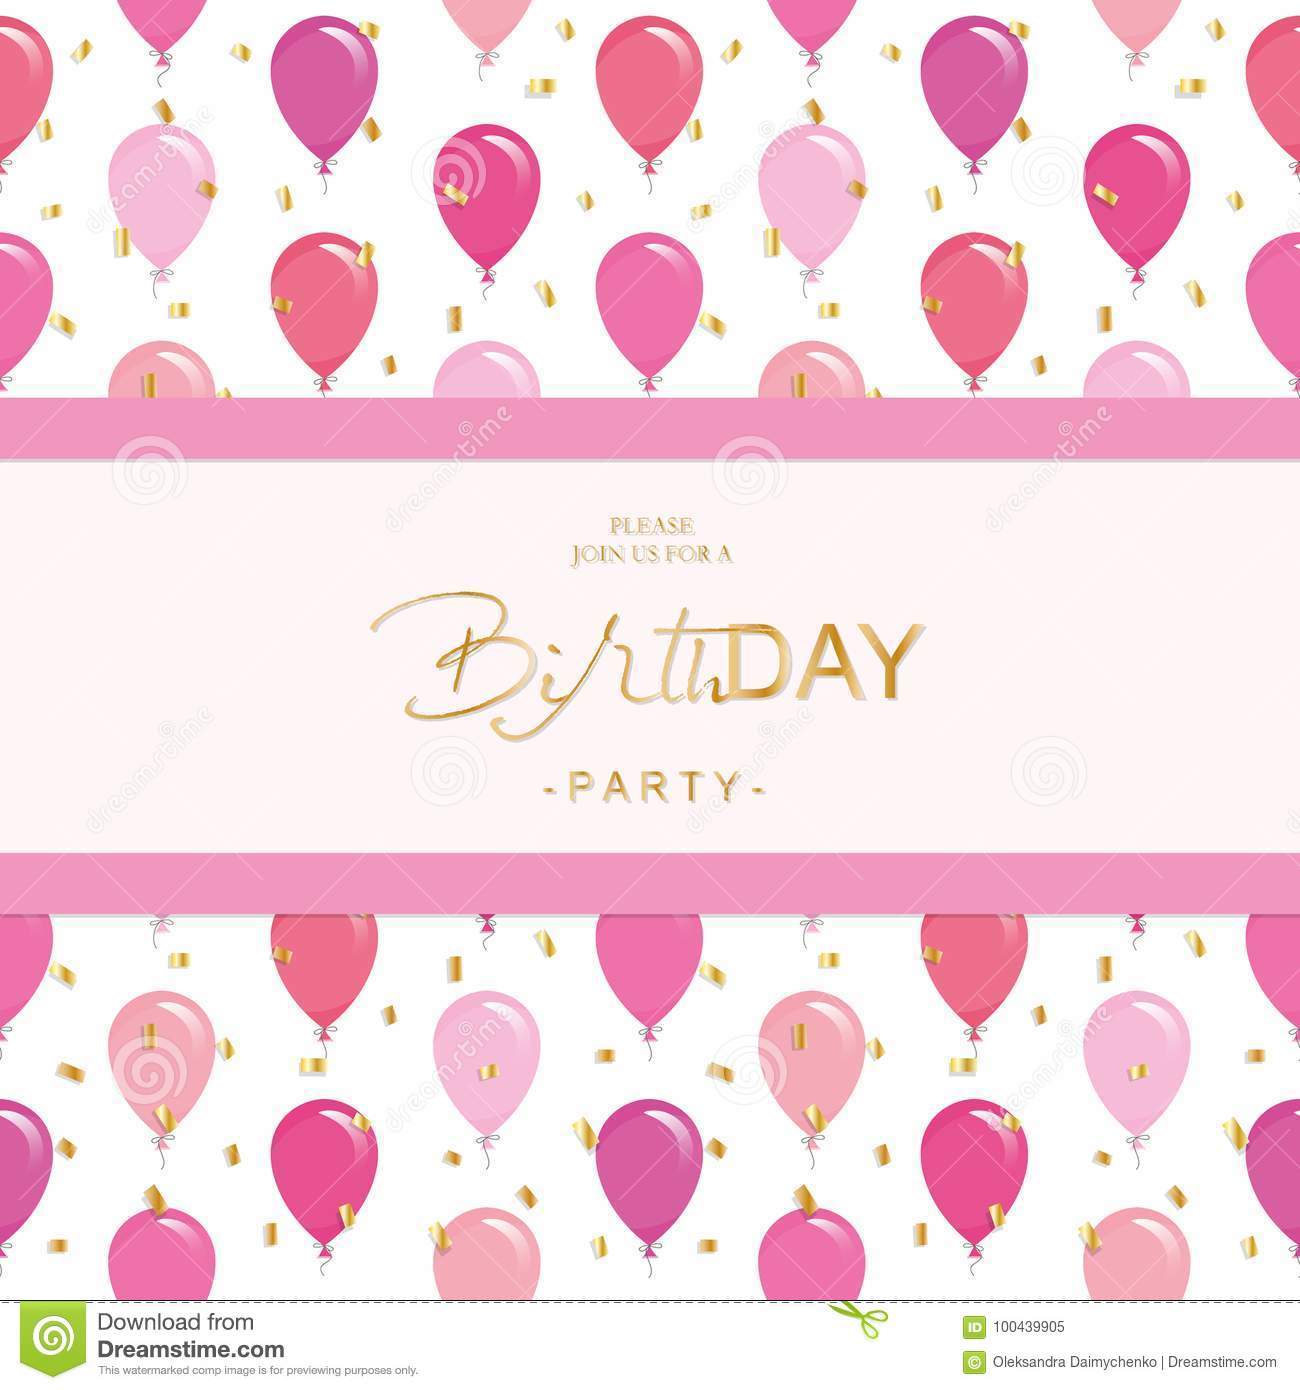 Birthday Party Invitation Card Template. Included Seamless Pattern ...